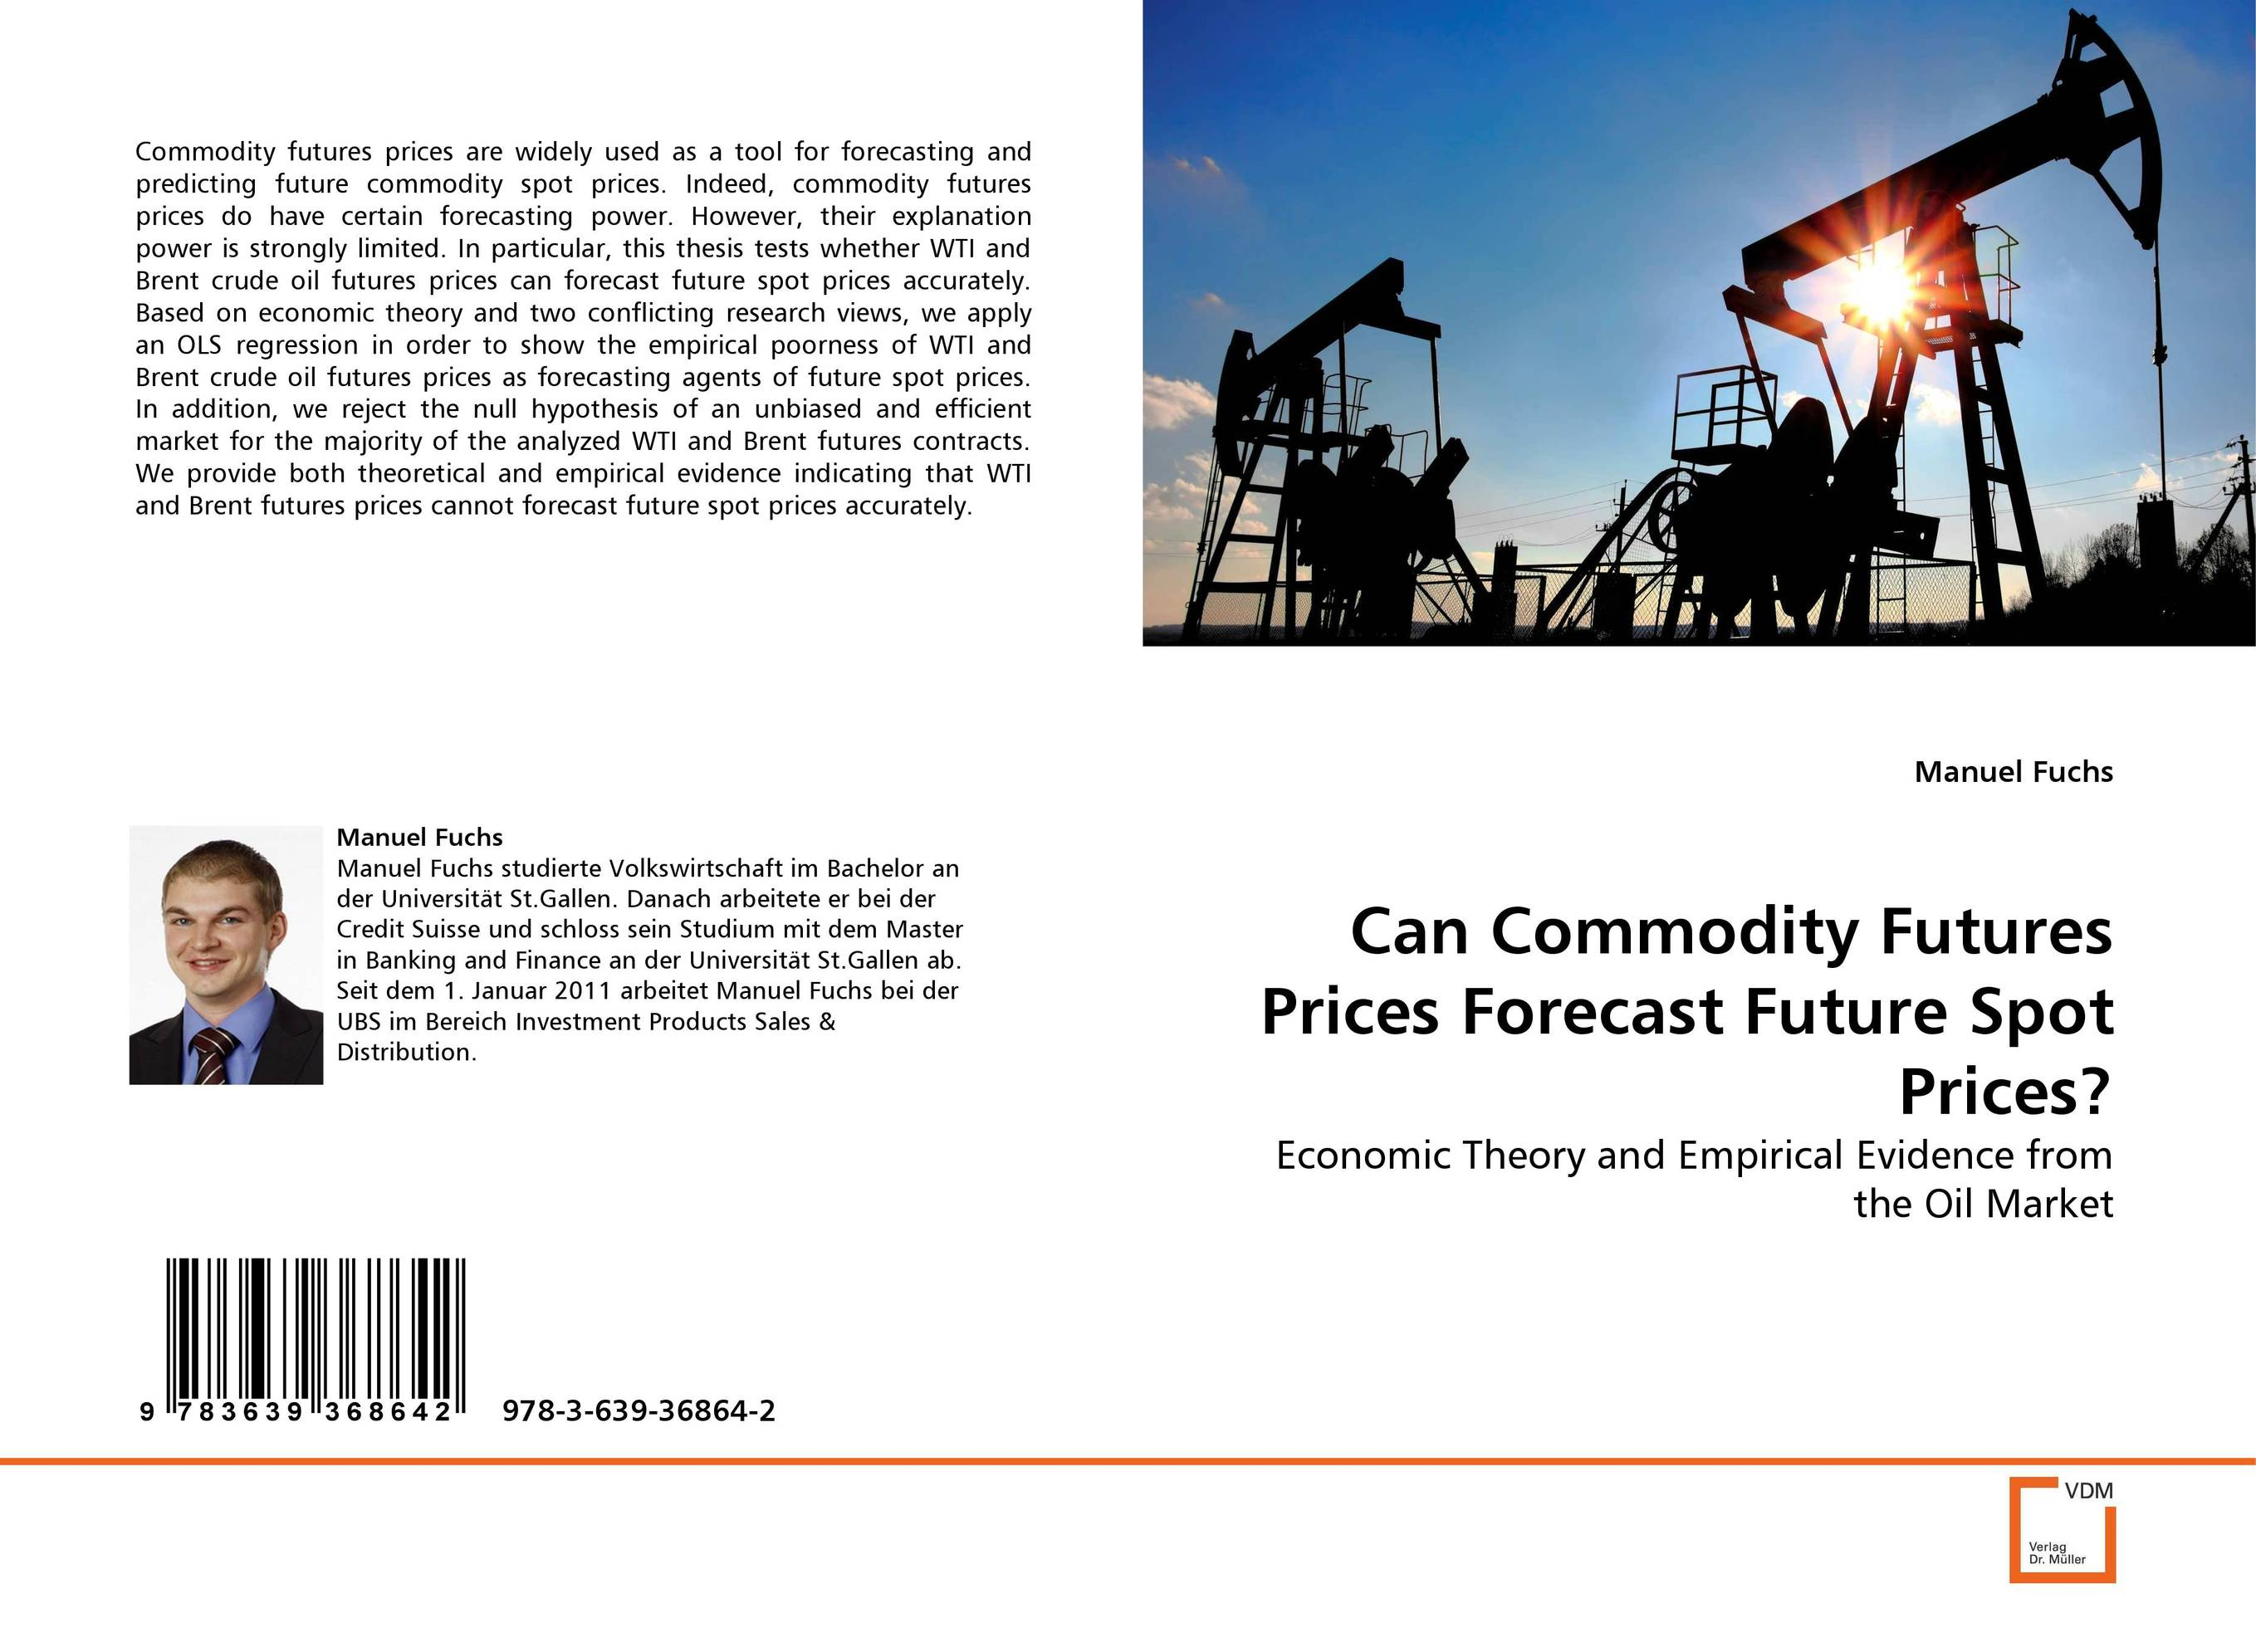 Can Commodity Futures Prices Forecast Future Spot Prices?